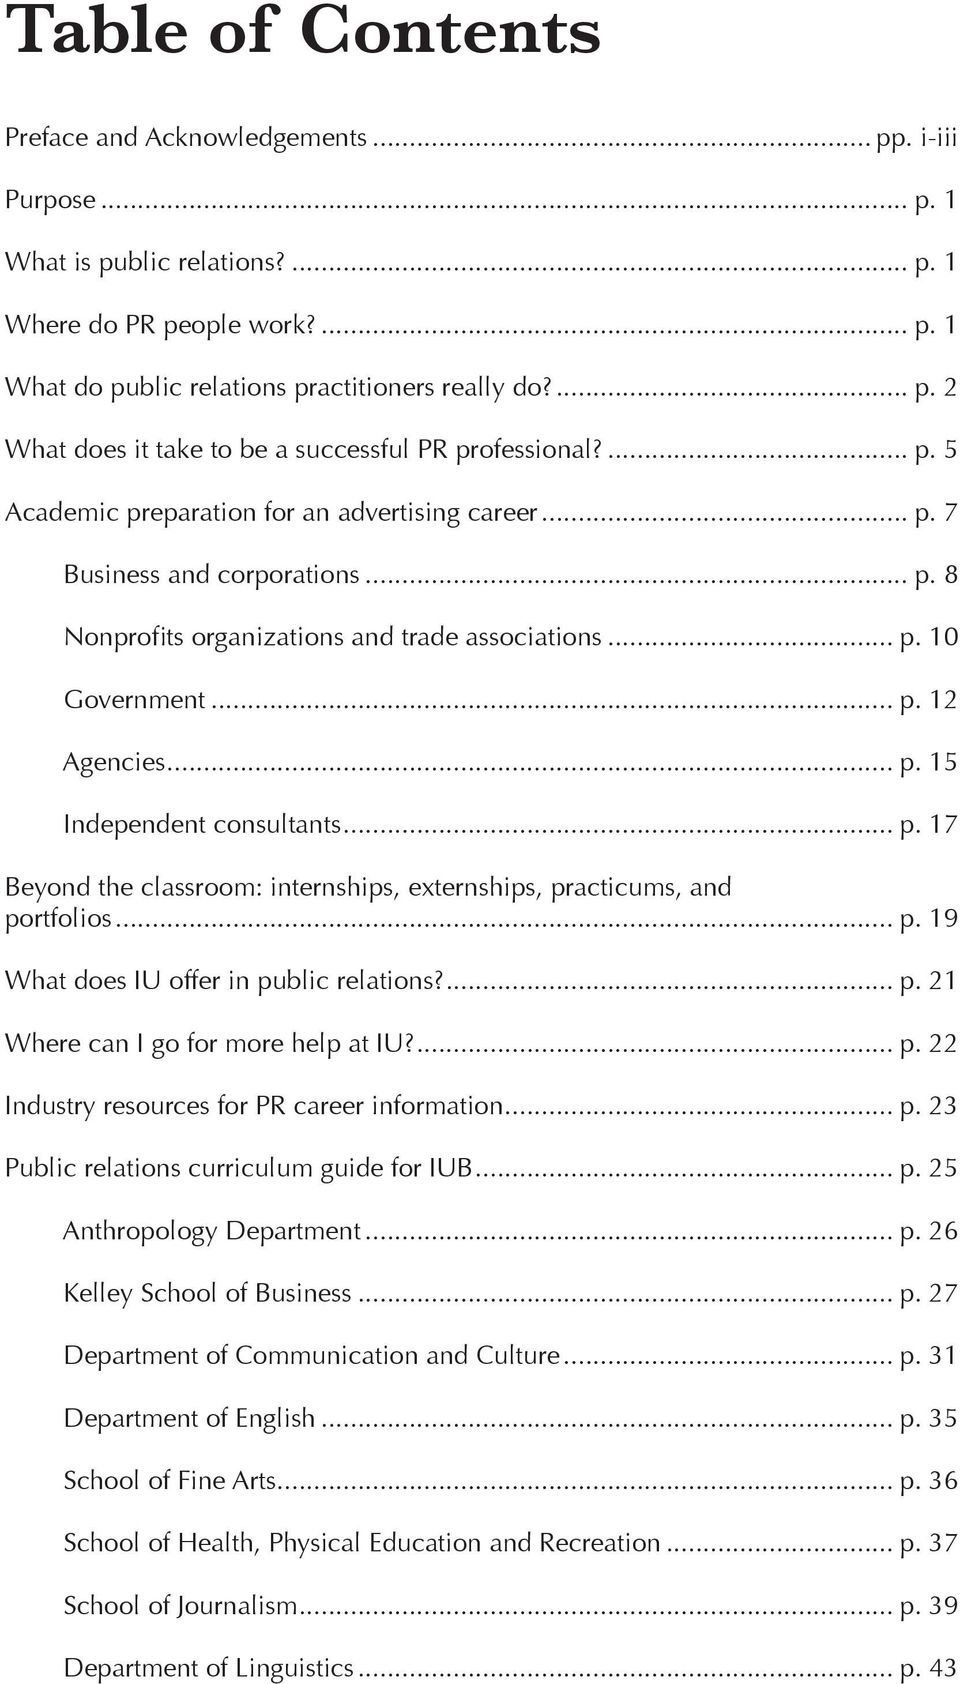 .. p. 17 Beyond the classroom: internships, externships, practicums, and portfolios... p. 19 What does IU offer in public relations?... p. 21 Where can I go for more help at IU?... p. 22 Industry resources for PR career information.